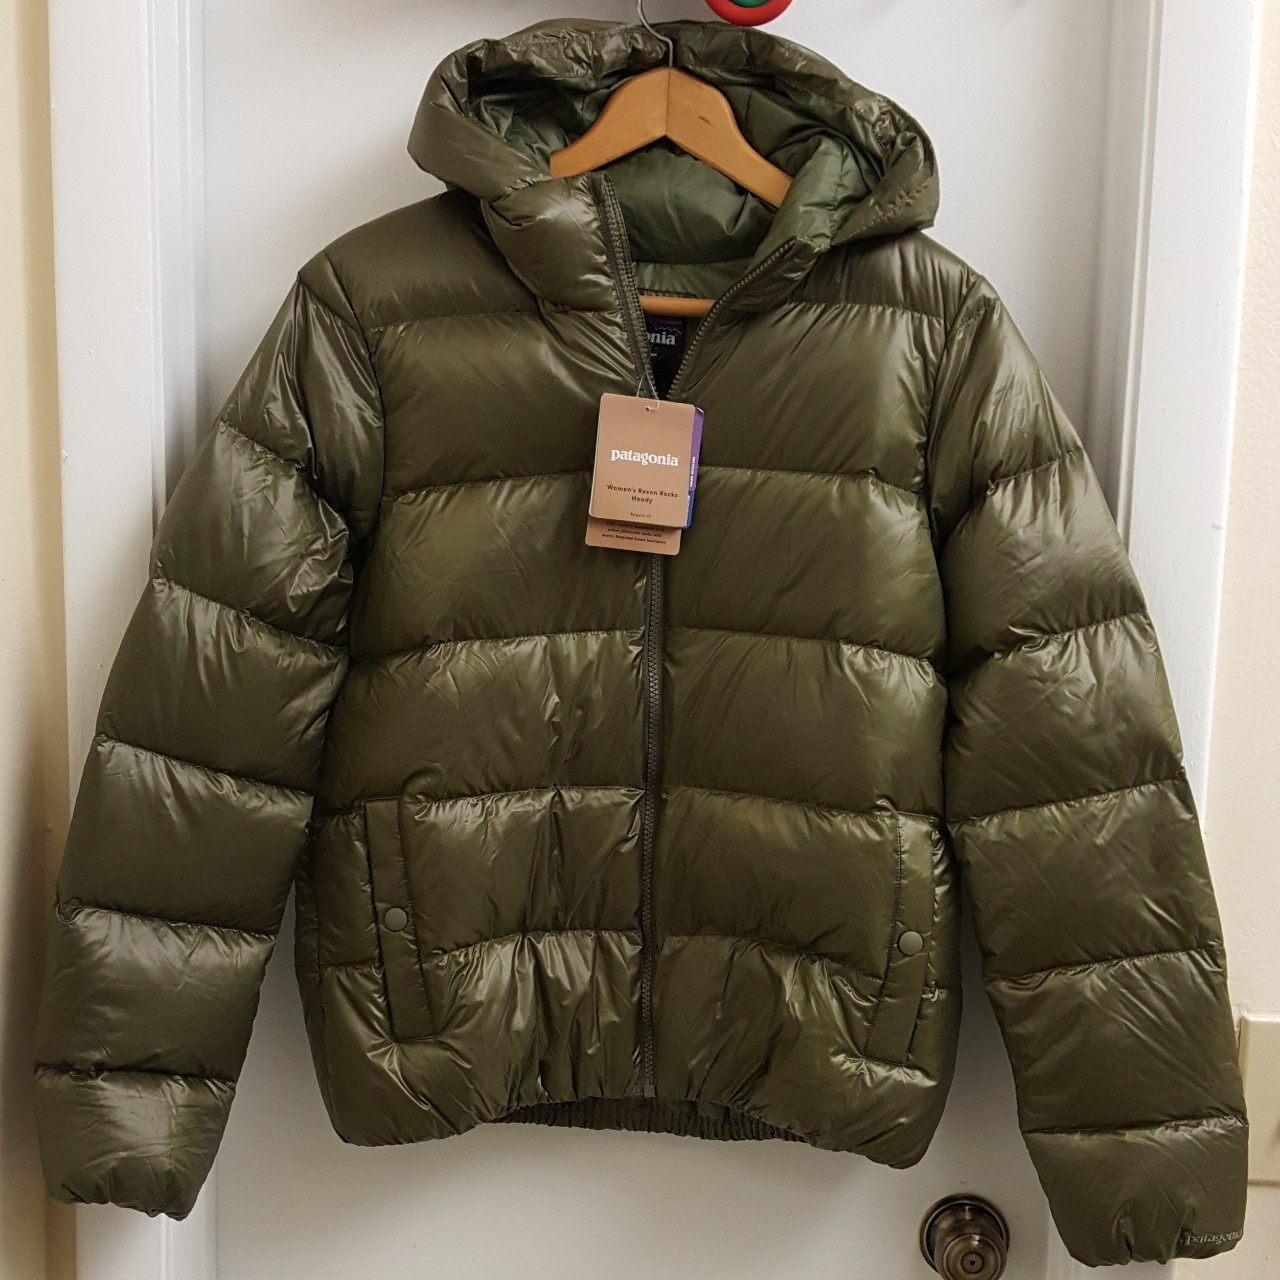 😍Reduced! For Quick Sale!! ! New With Tags Patagonia by Depop